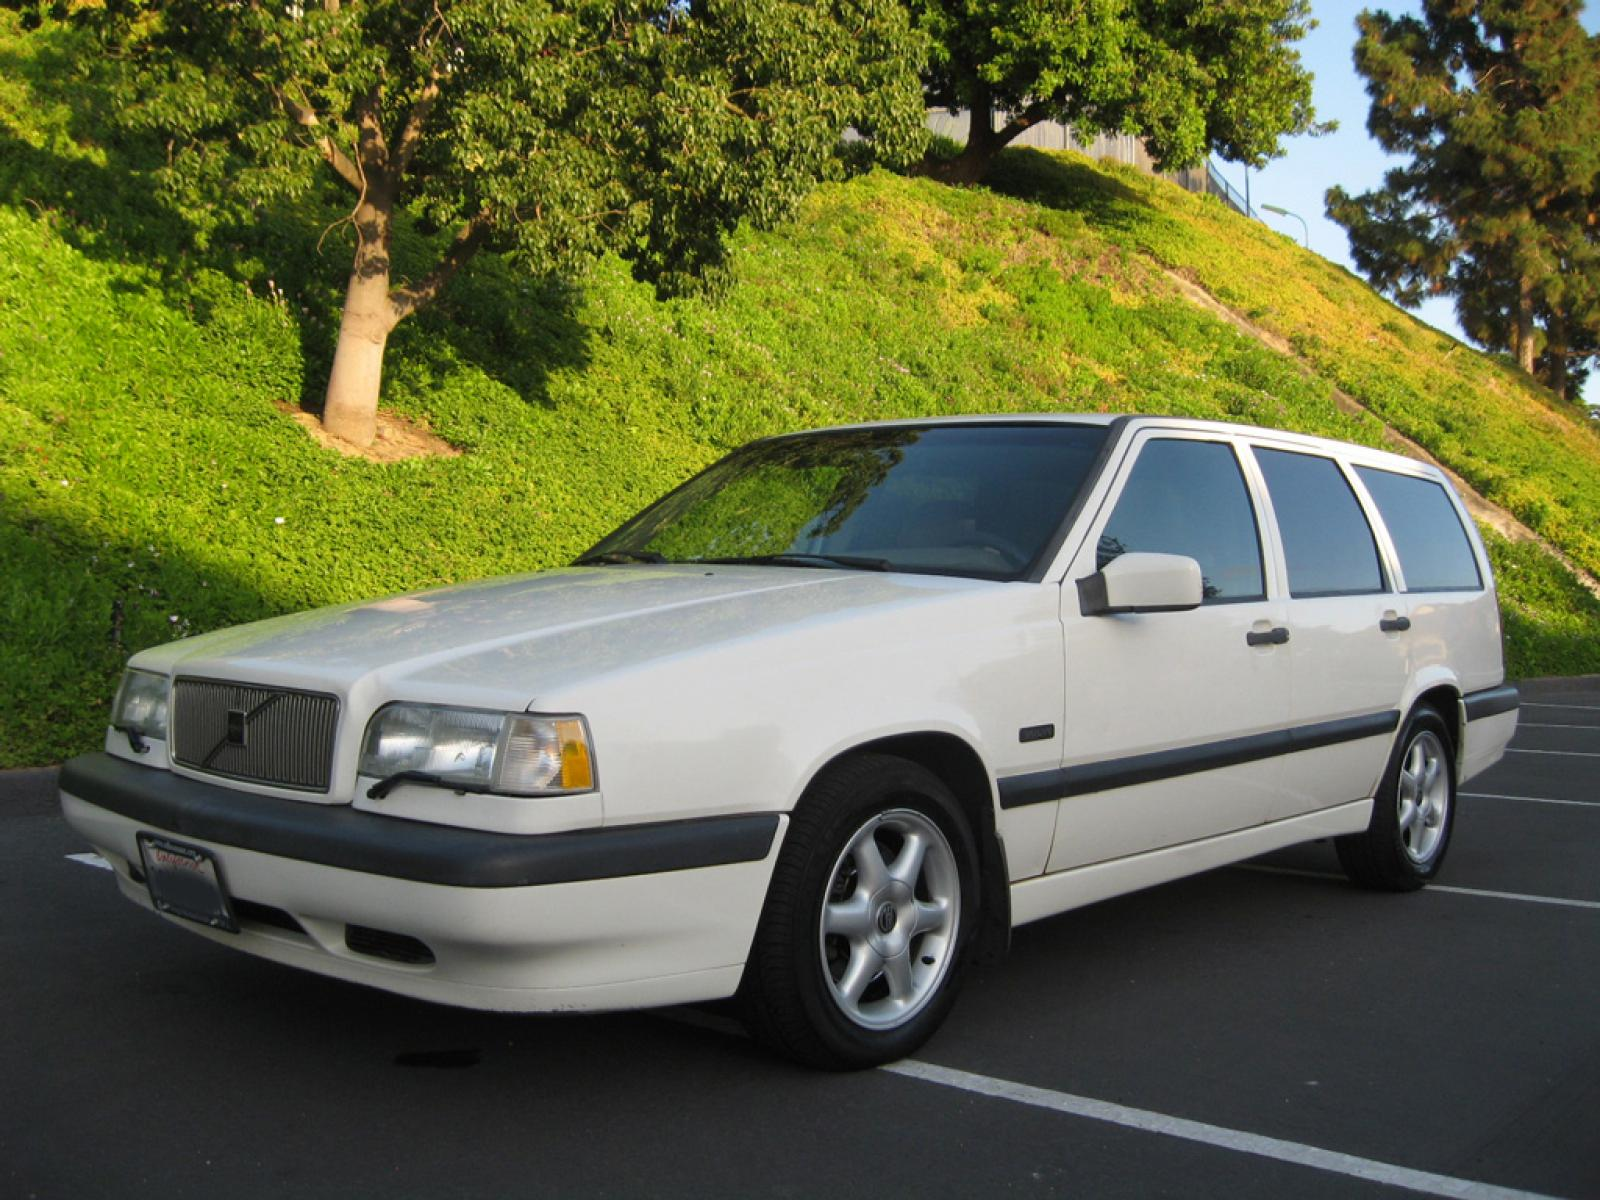 res rare video volvo automotive wagon ltd shmoo turbocharged beautiful product hi img pics and